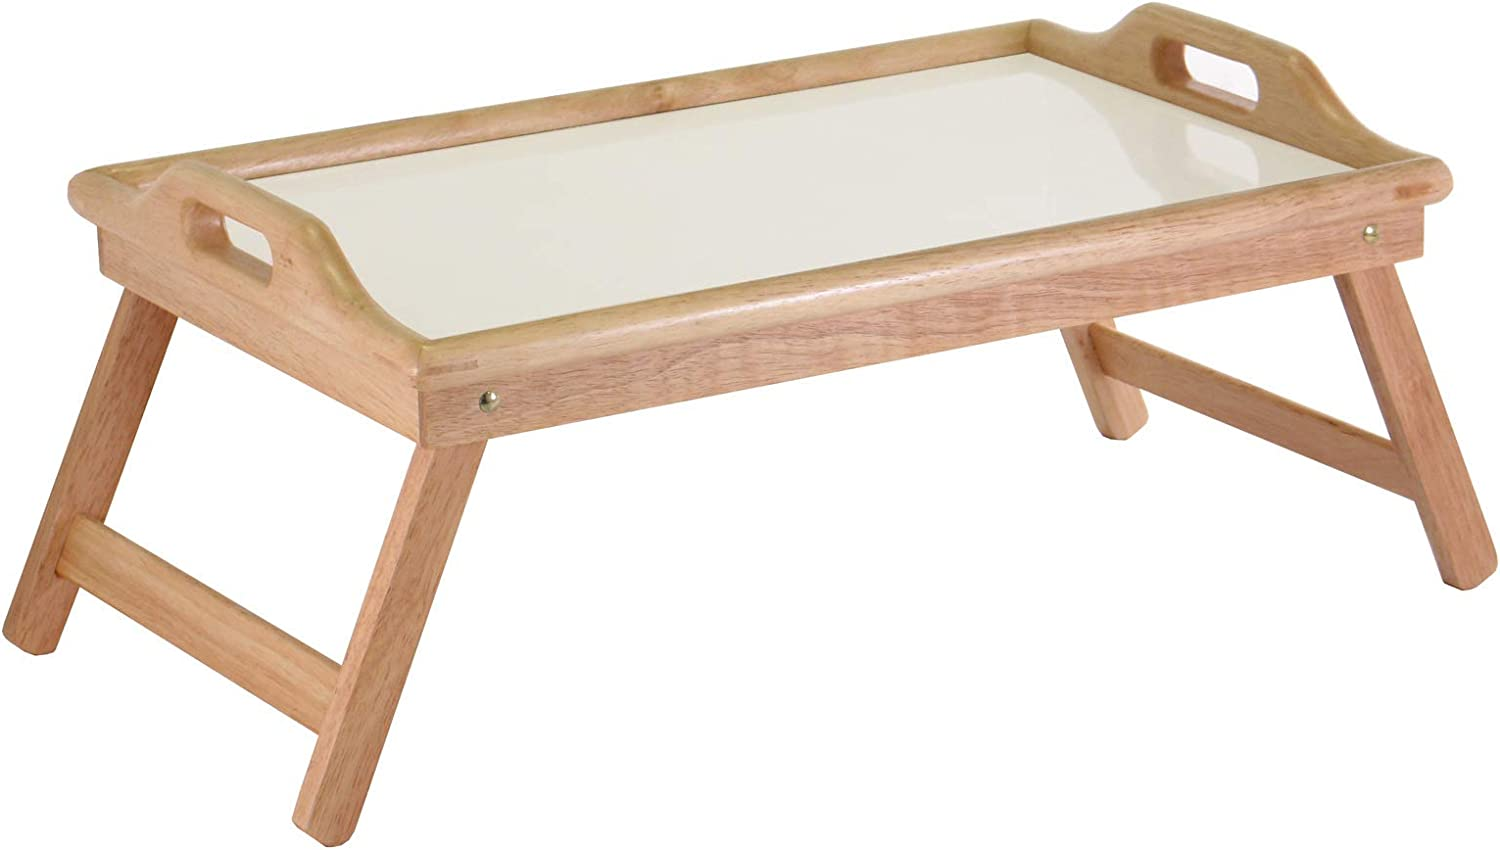 Wood Sherwood Serving Bombing free shipping Breakfast Bed White Tray National products Natural